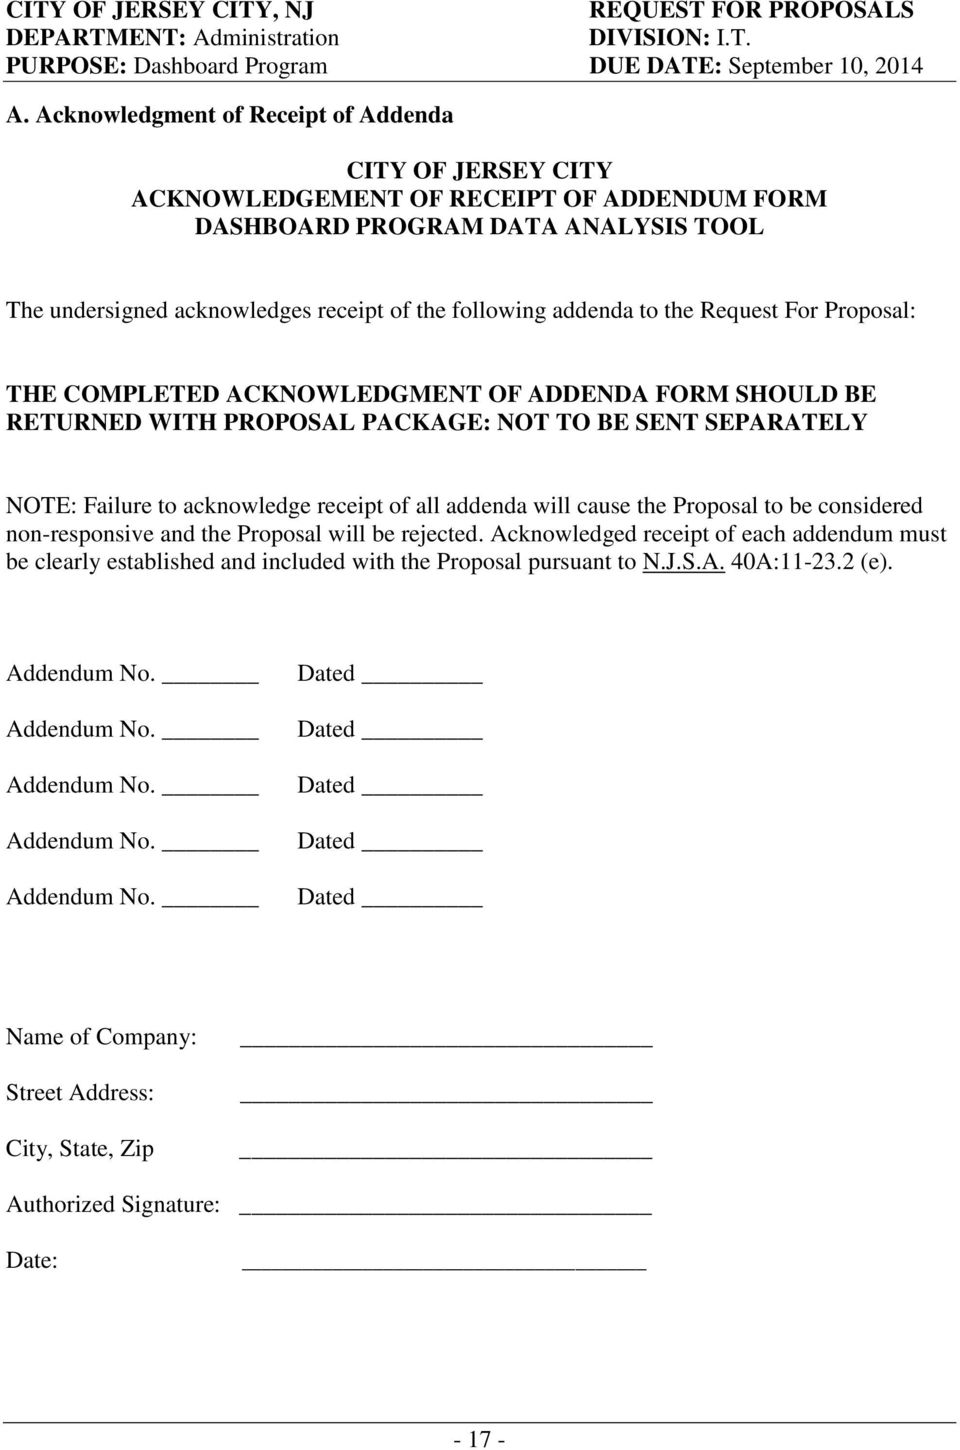 to the Request For Proposal: THE COMPLETED ACKNOWLEDGMENT OF ADDENDA FORM SHOULD BE RETURNED WITH PROPOSAL PACKAGE: NOT TO BE SENT SEPARATELY NOTE: Failure to acknowledge receipt of all addenda will